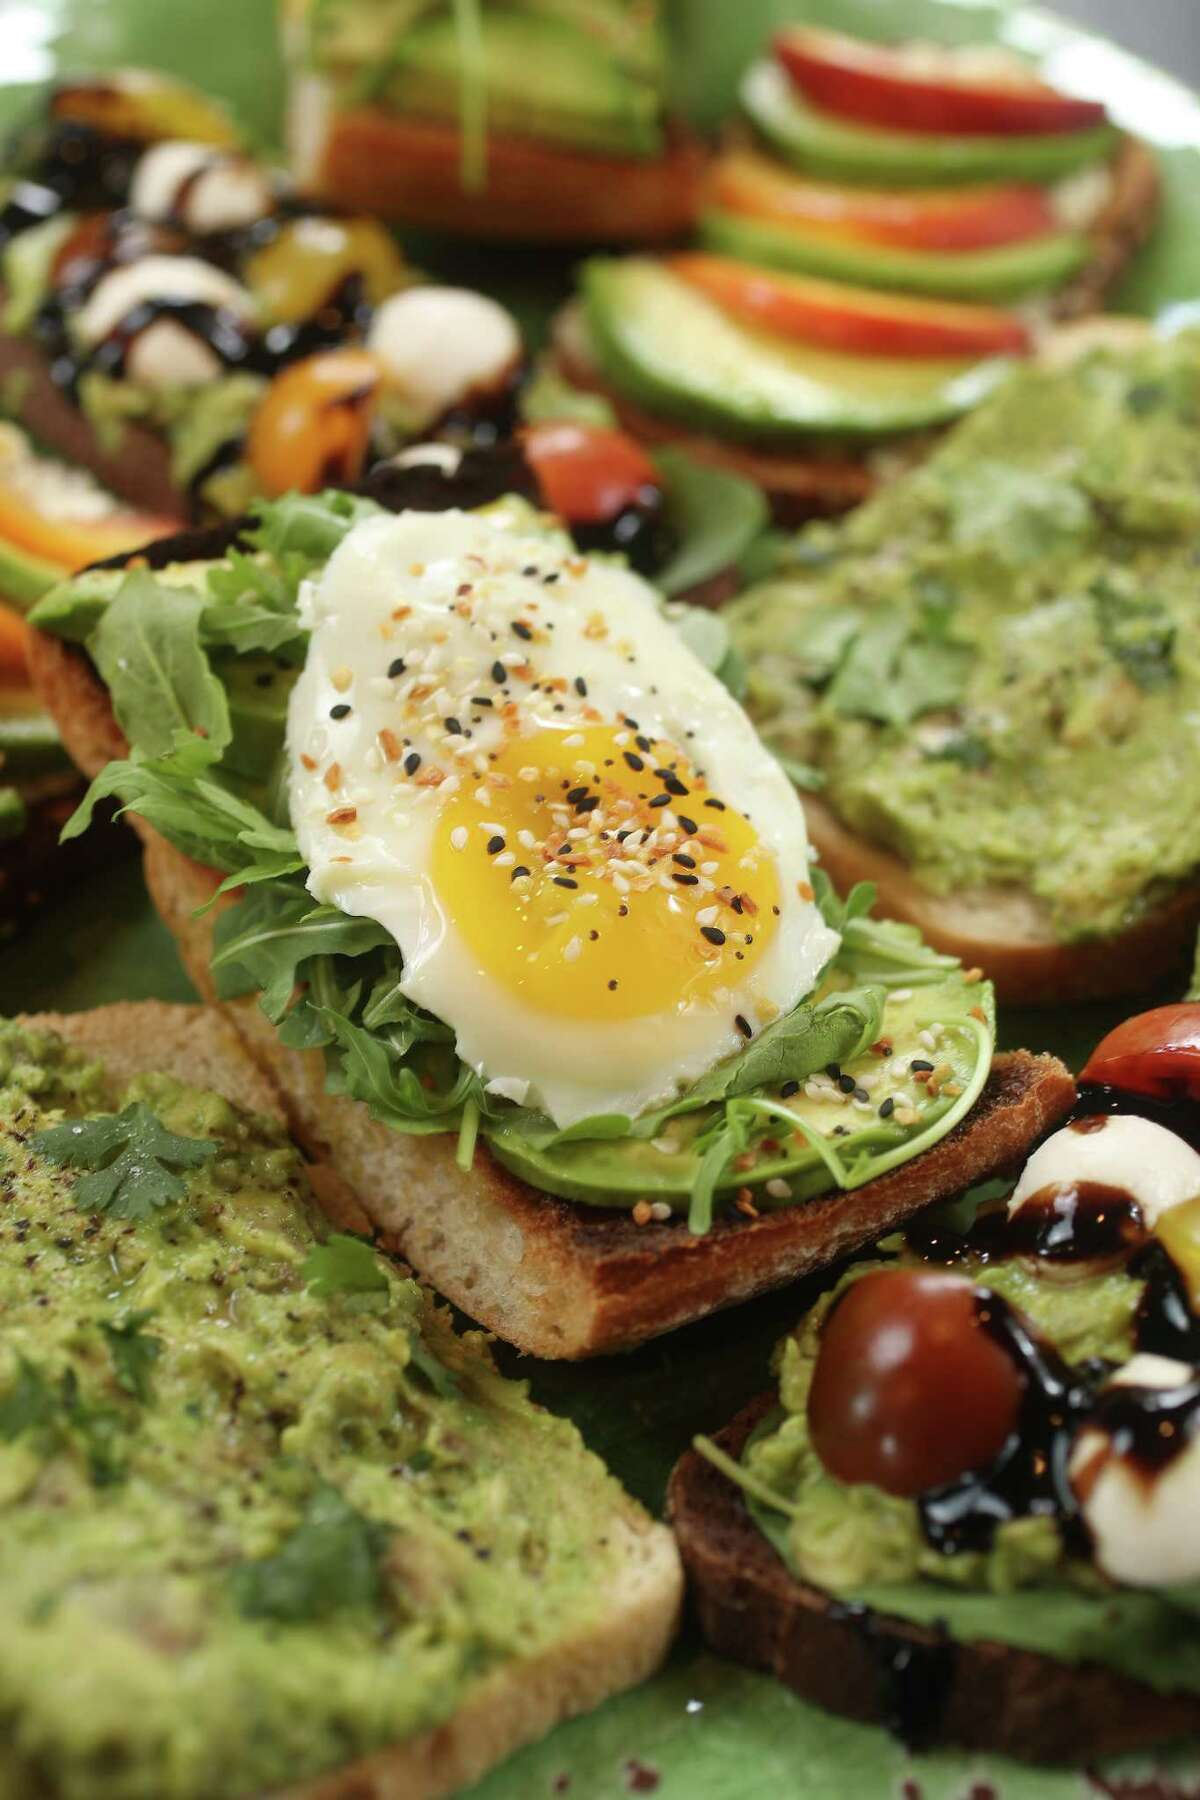 We created four avocado toast recipes that will fill the void in your life caused by crushing debt.